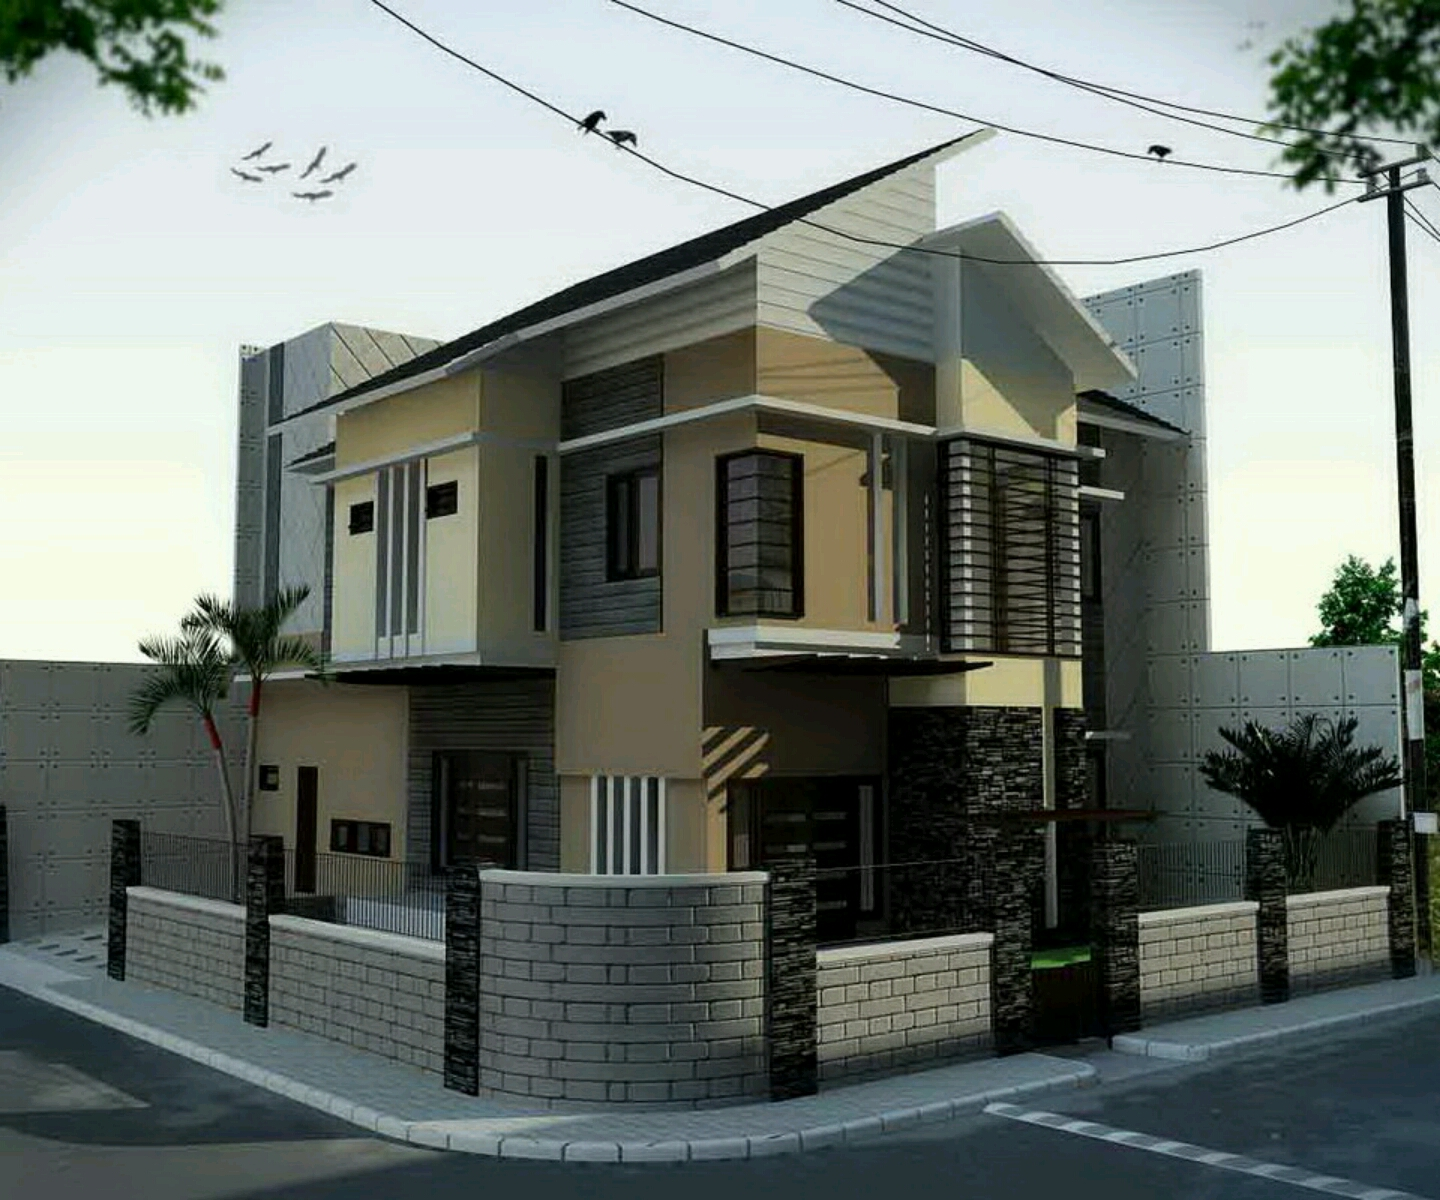 Modern homes designs front views modern home designs for House front model design